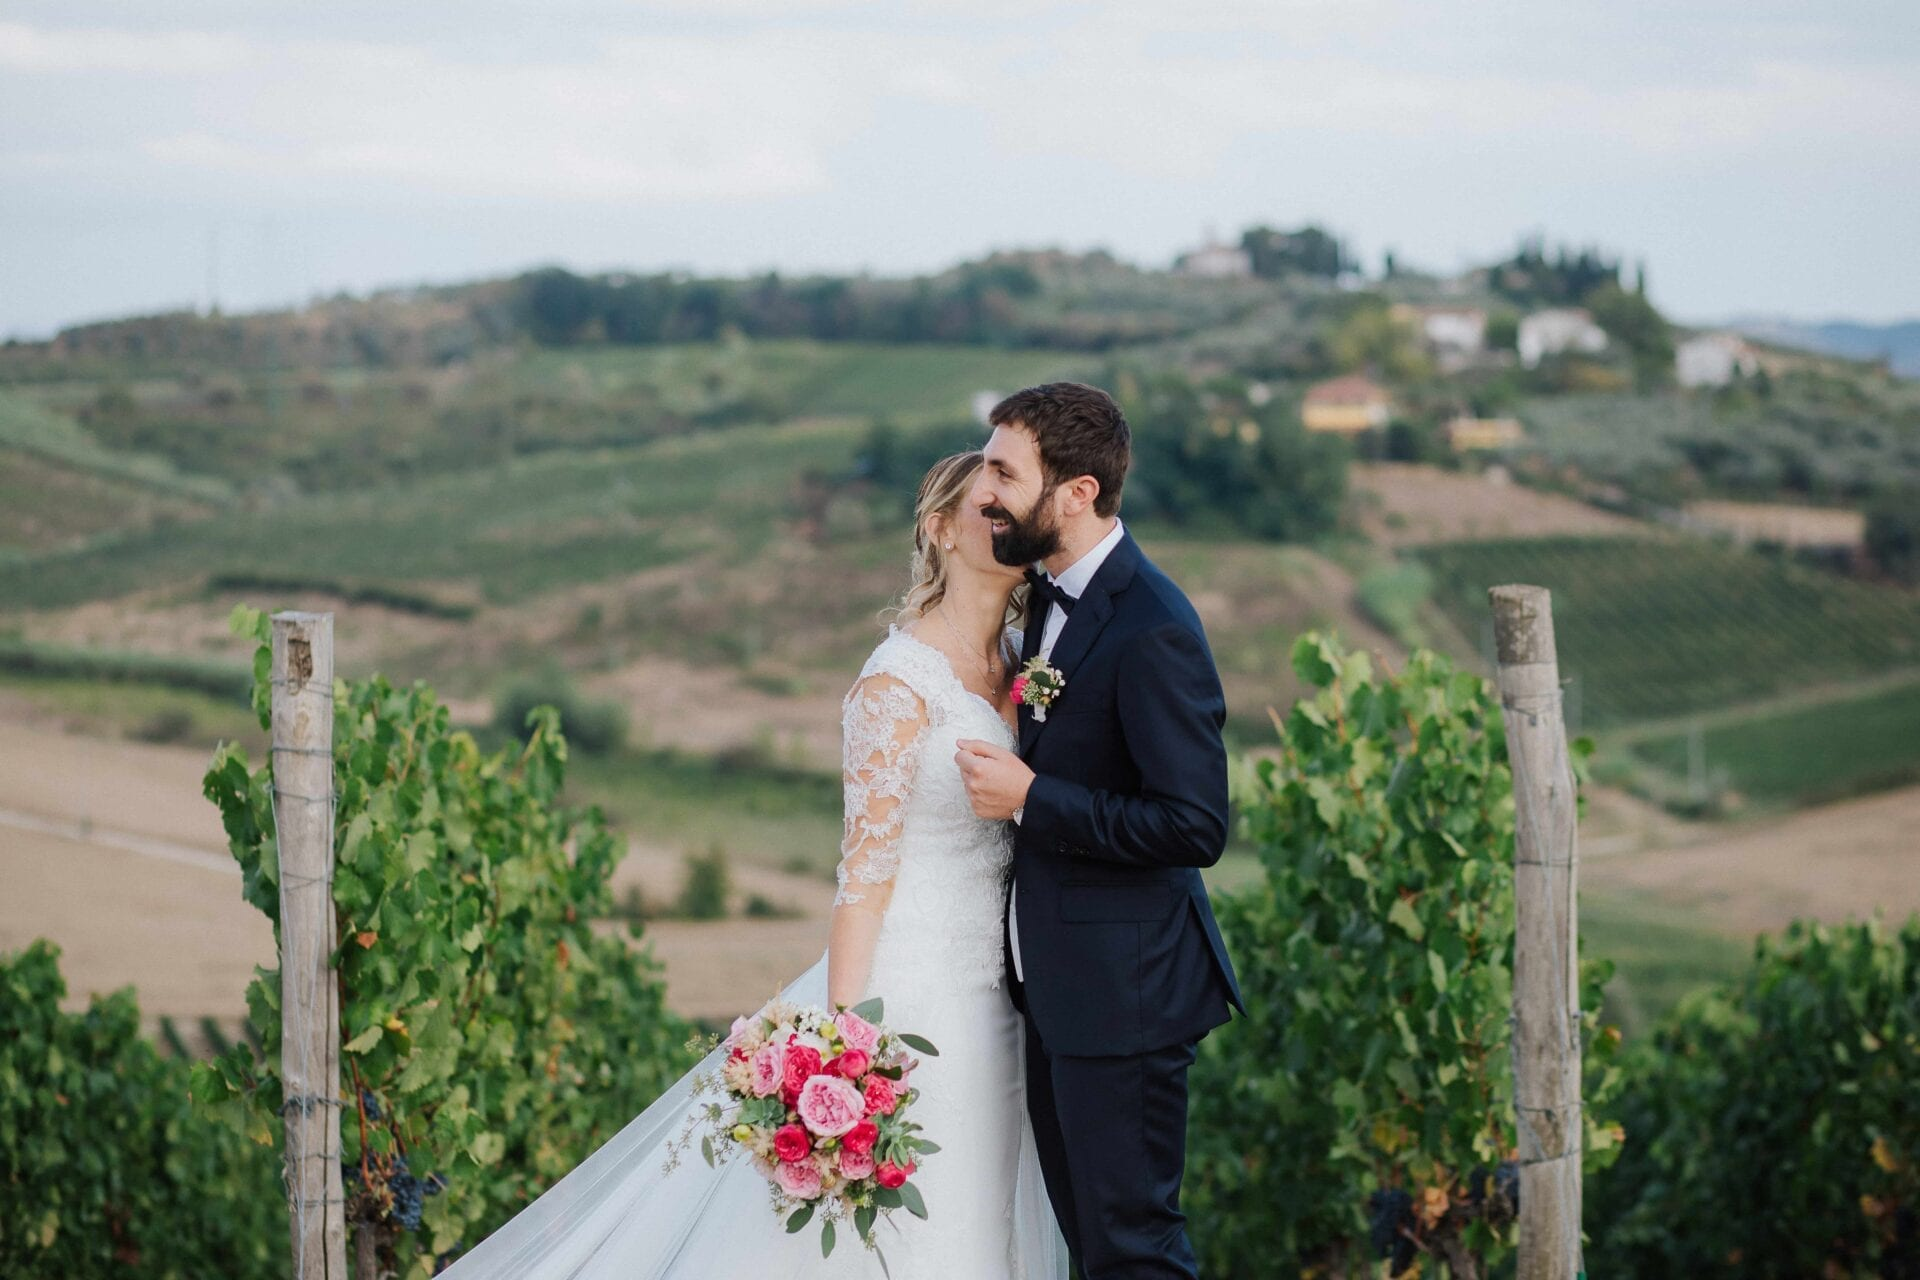 Matrimonio Bohemien Hotel : Il matrimonio boho chic weweddings wedding planning